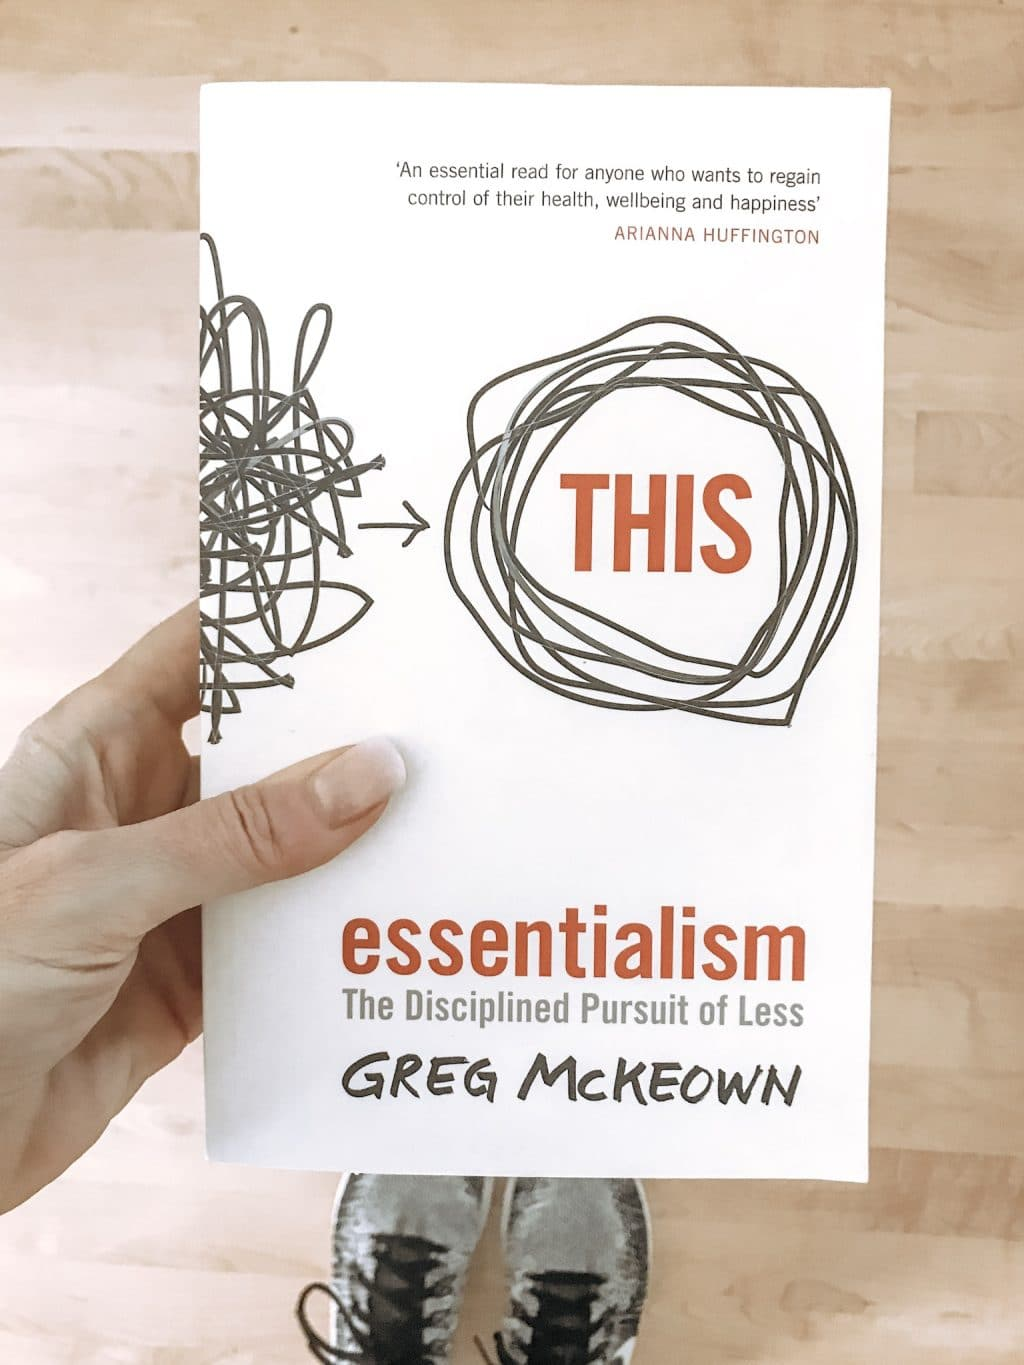 essentialism: the relentless pursuit of less. A book that changed my life.